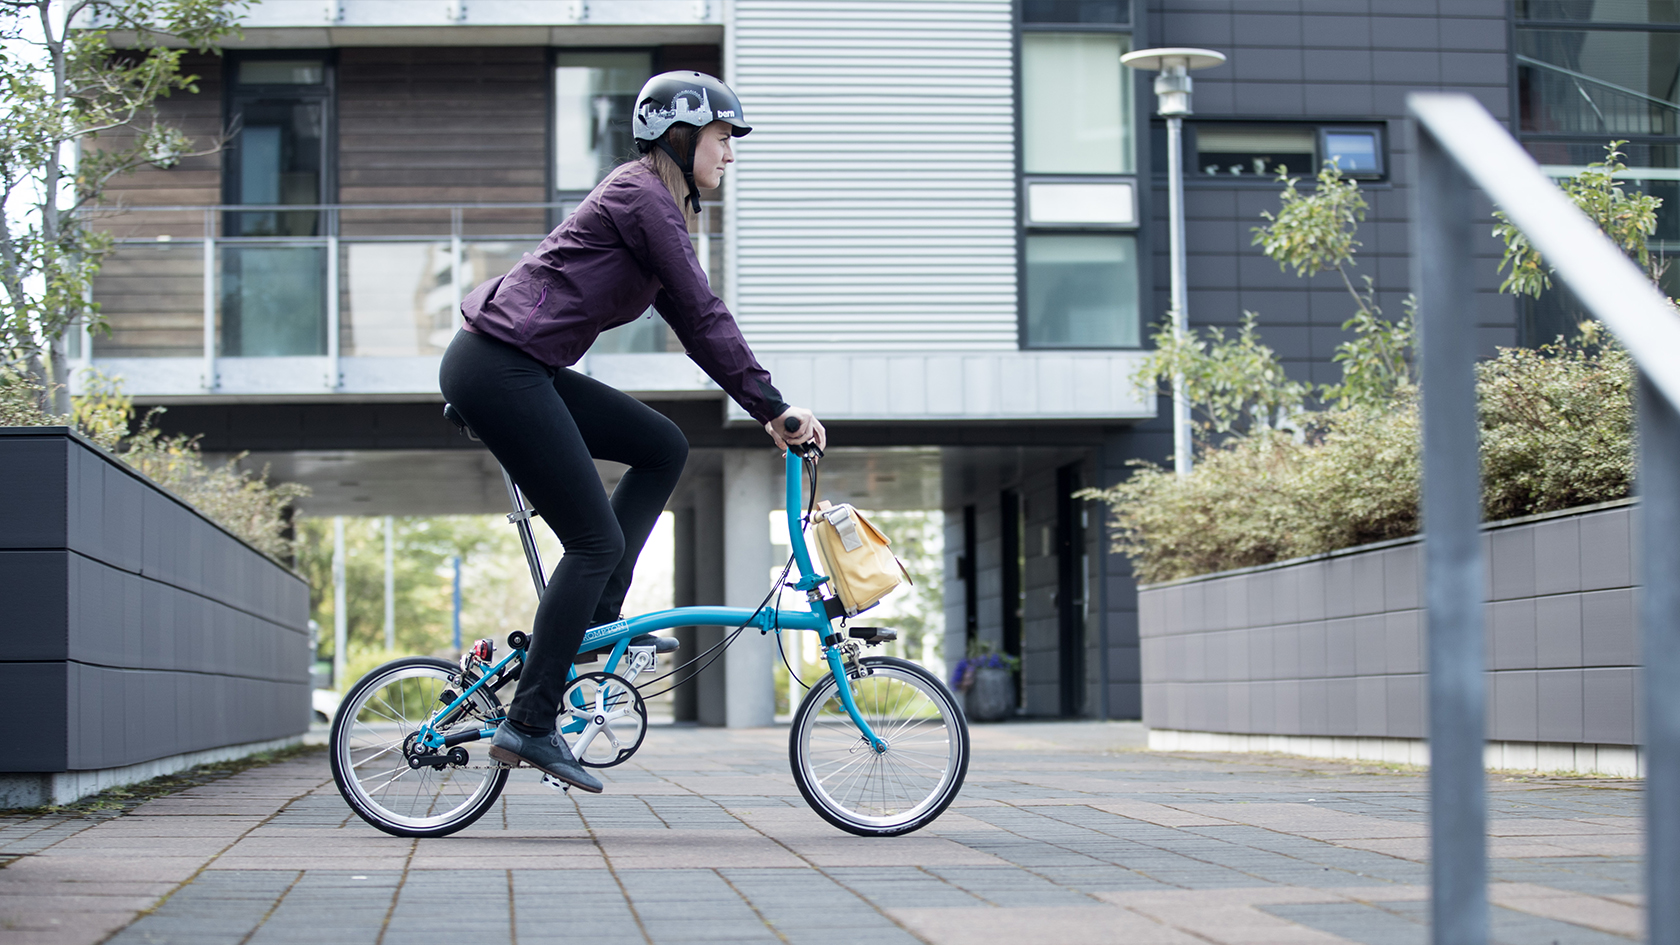 Lady riding a blue Brompton bike with S-type handlebars.